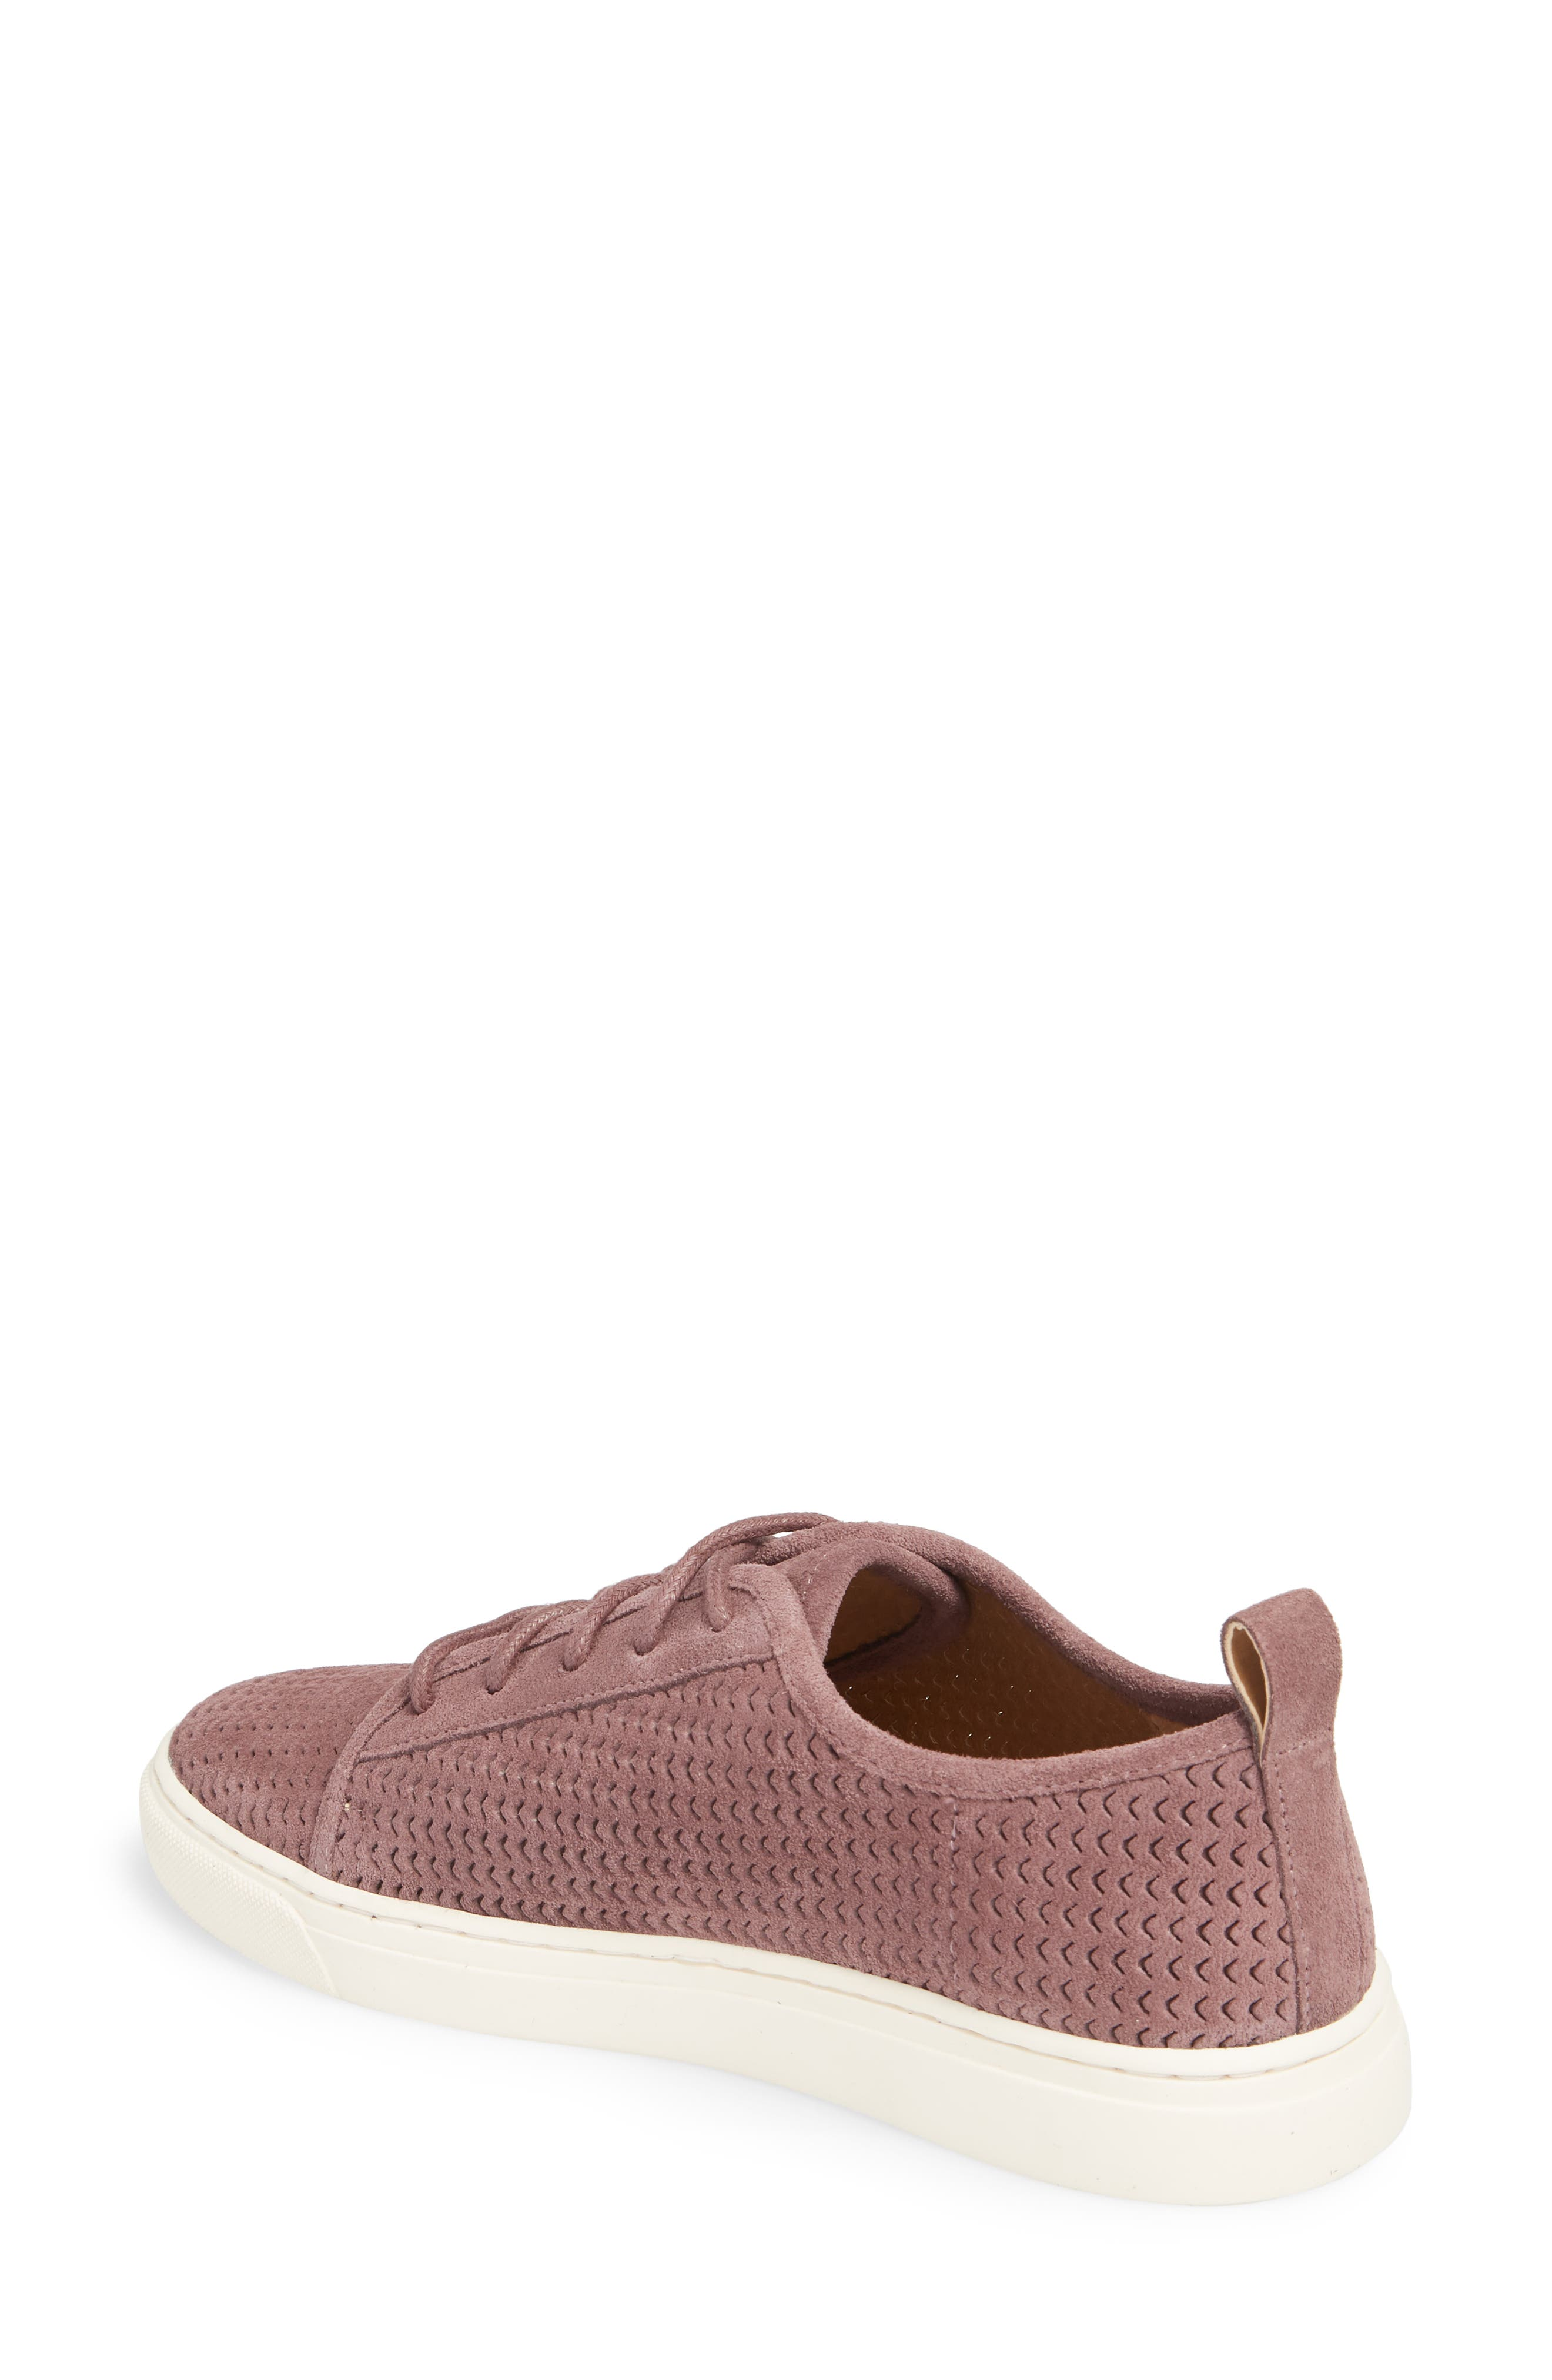 Lawove Sneaker,                             Alternate thumbnail 2, color,                             Berry Smooth Suede